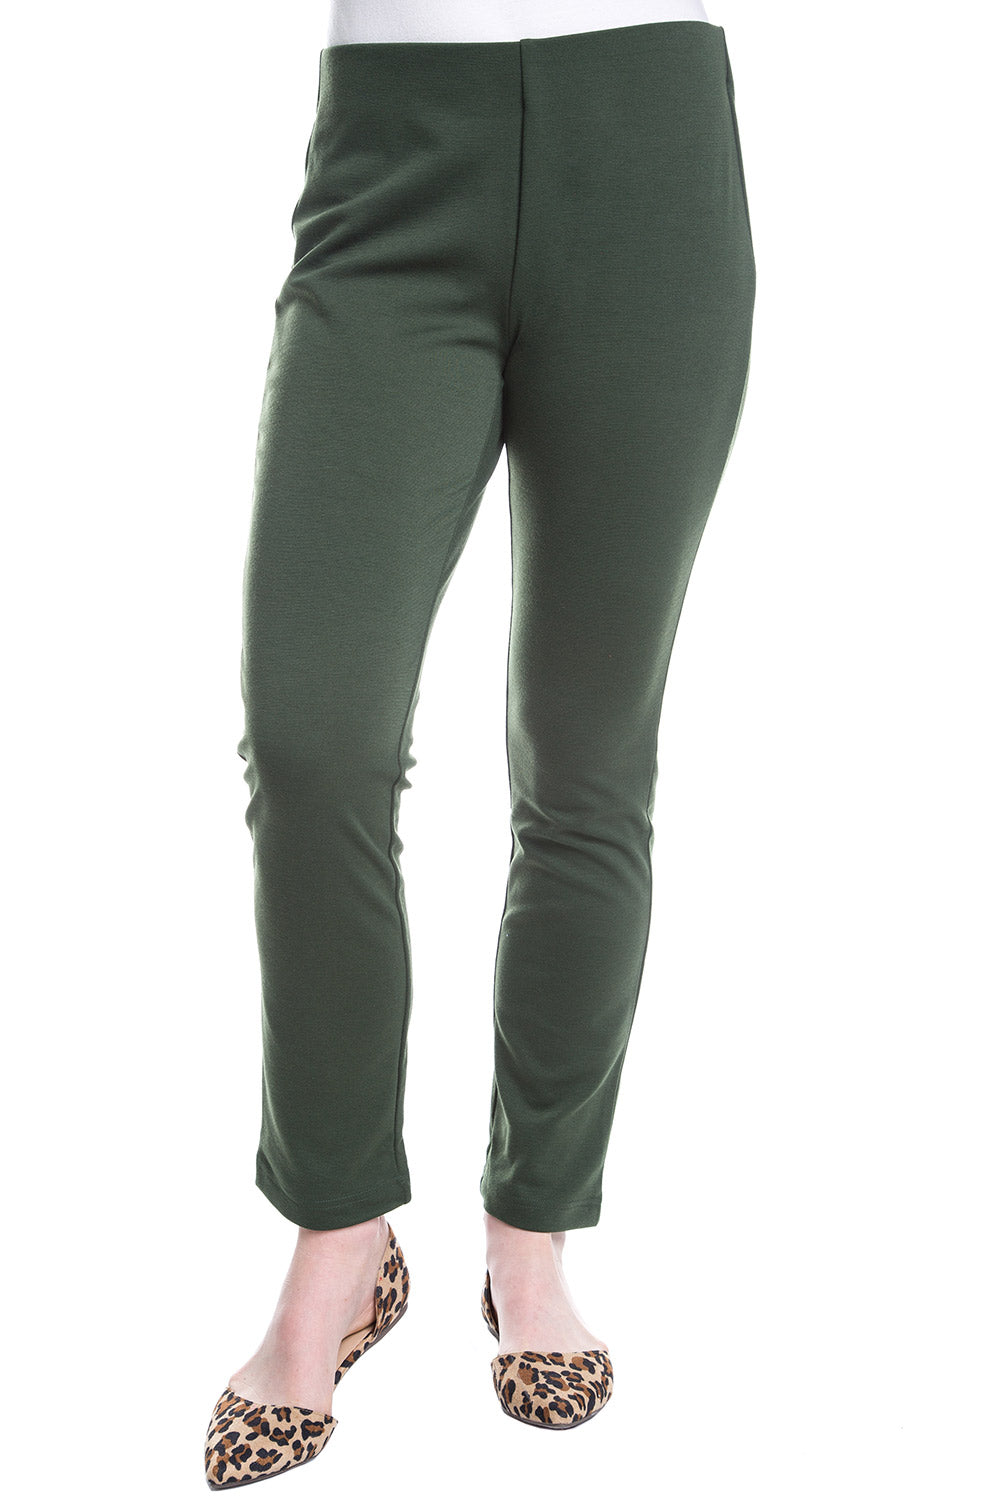 Type 3 In The Mix Pants In Pine Green